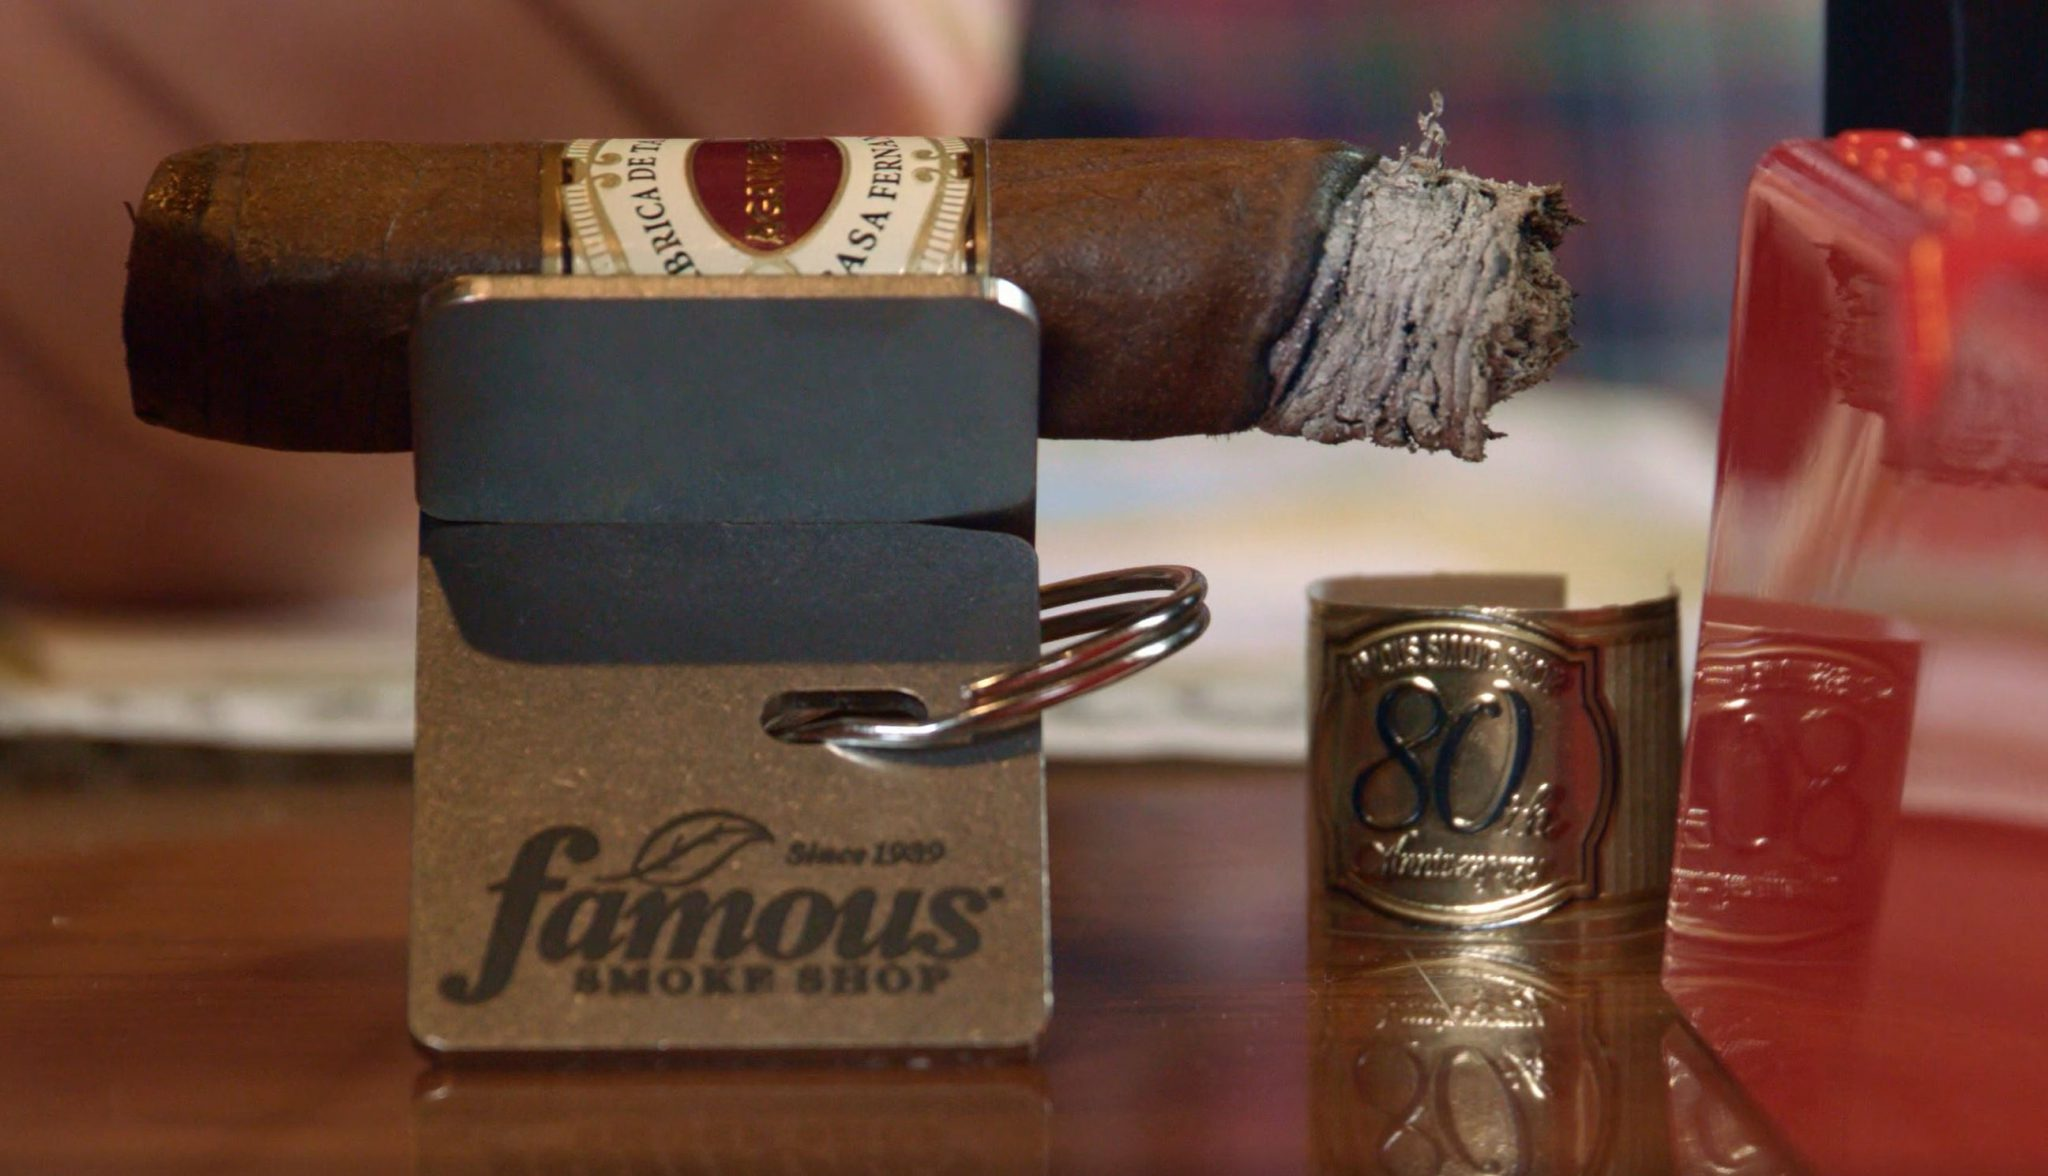 Aganorsa Leaf Famous 80th Anniversary Cigar Review at Famous Smoke Shop Tommy Zman smoking